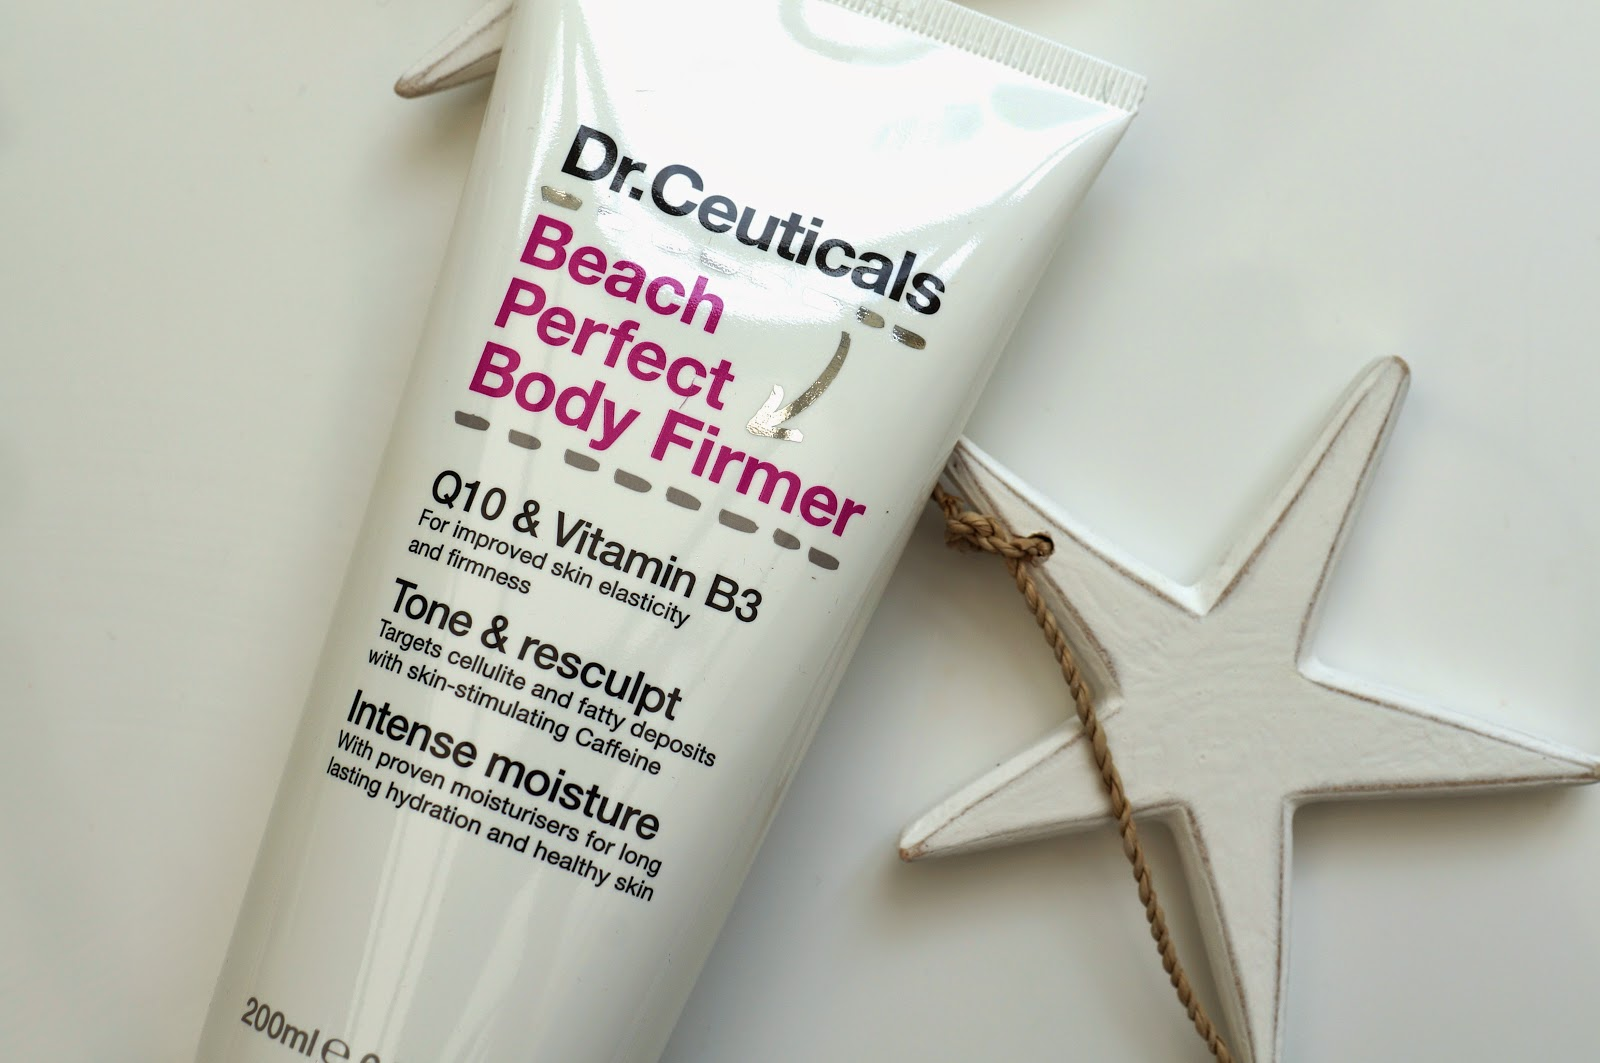 Dr.Ceuticals Beach Perfect Body Firmer